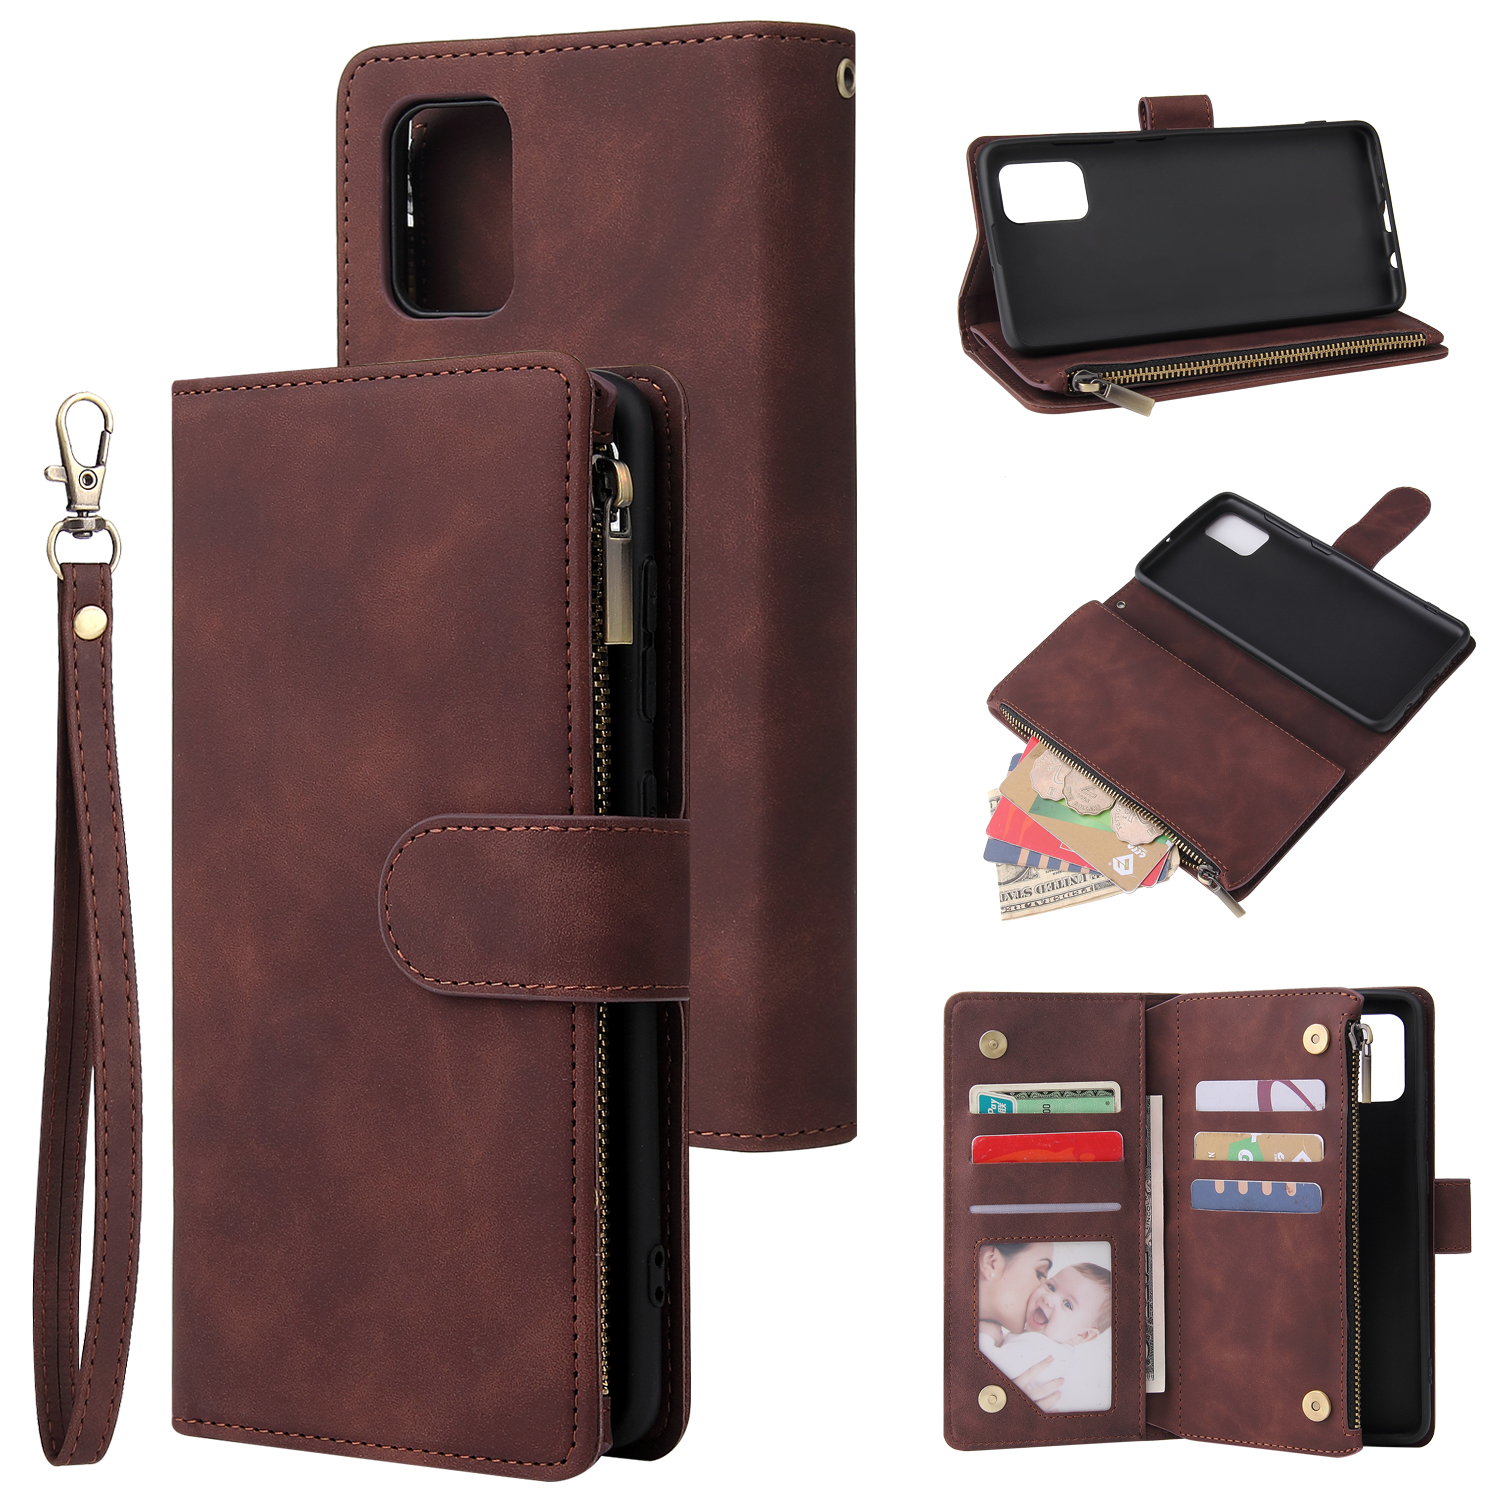 For Samsung A51 Case Smartphone Shell Precise Cutouts Zipper Closure Wallet Design Overall Protection Phone Cover  Coffee